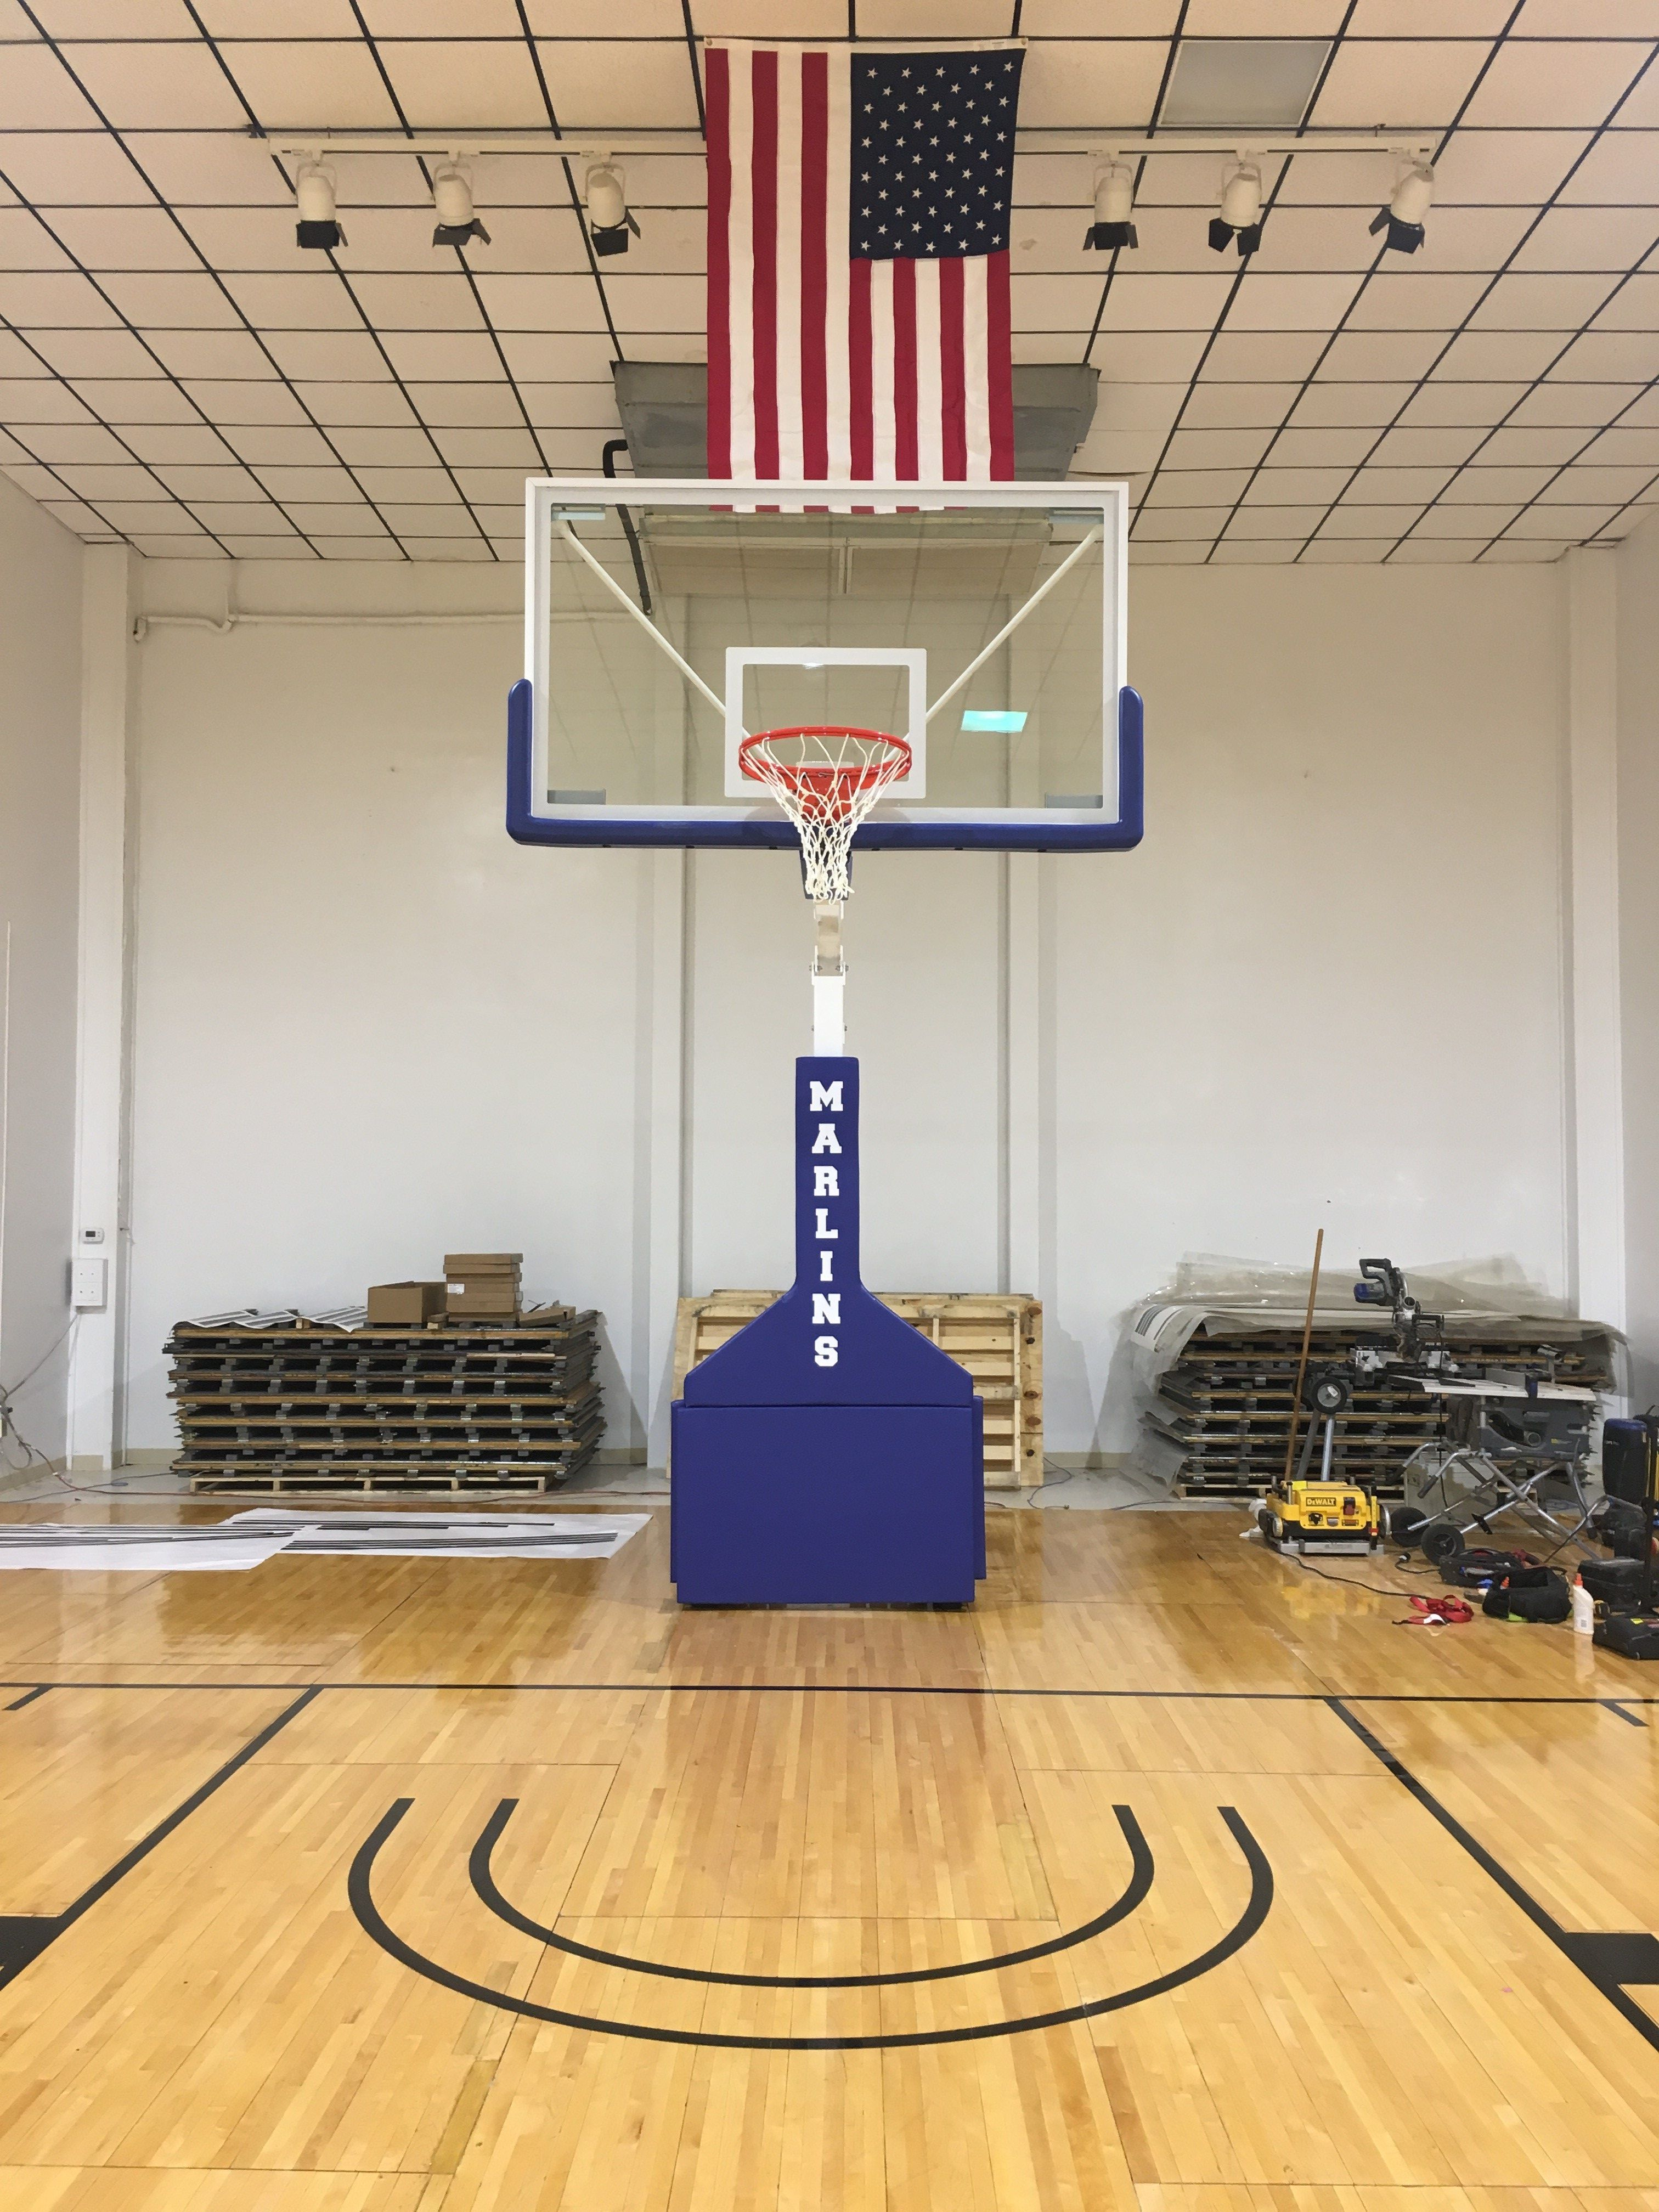 picture of hurricane triumph portable basketball goal that was